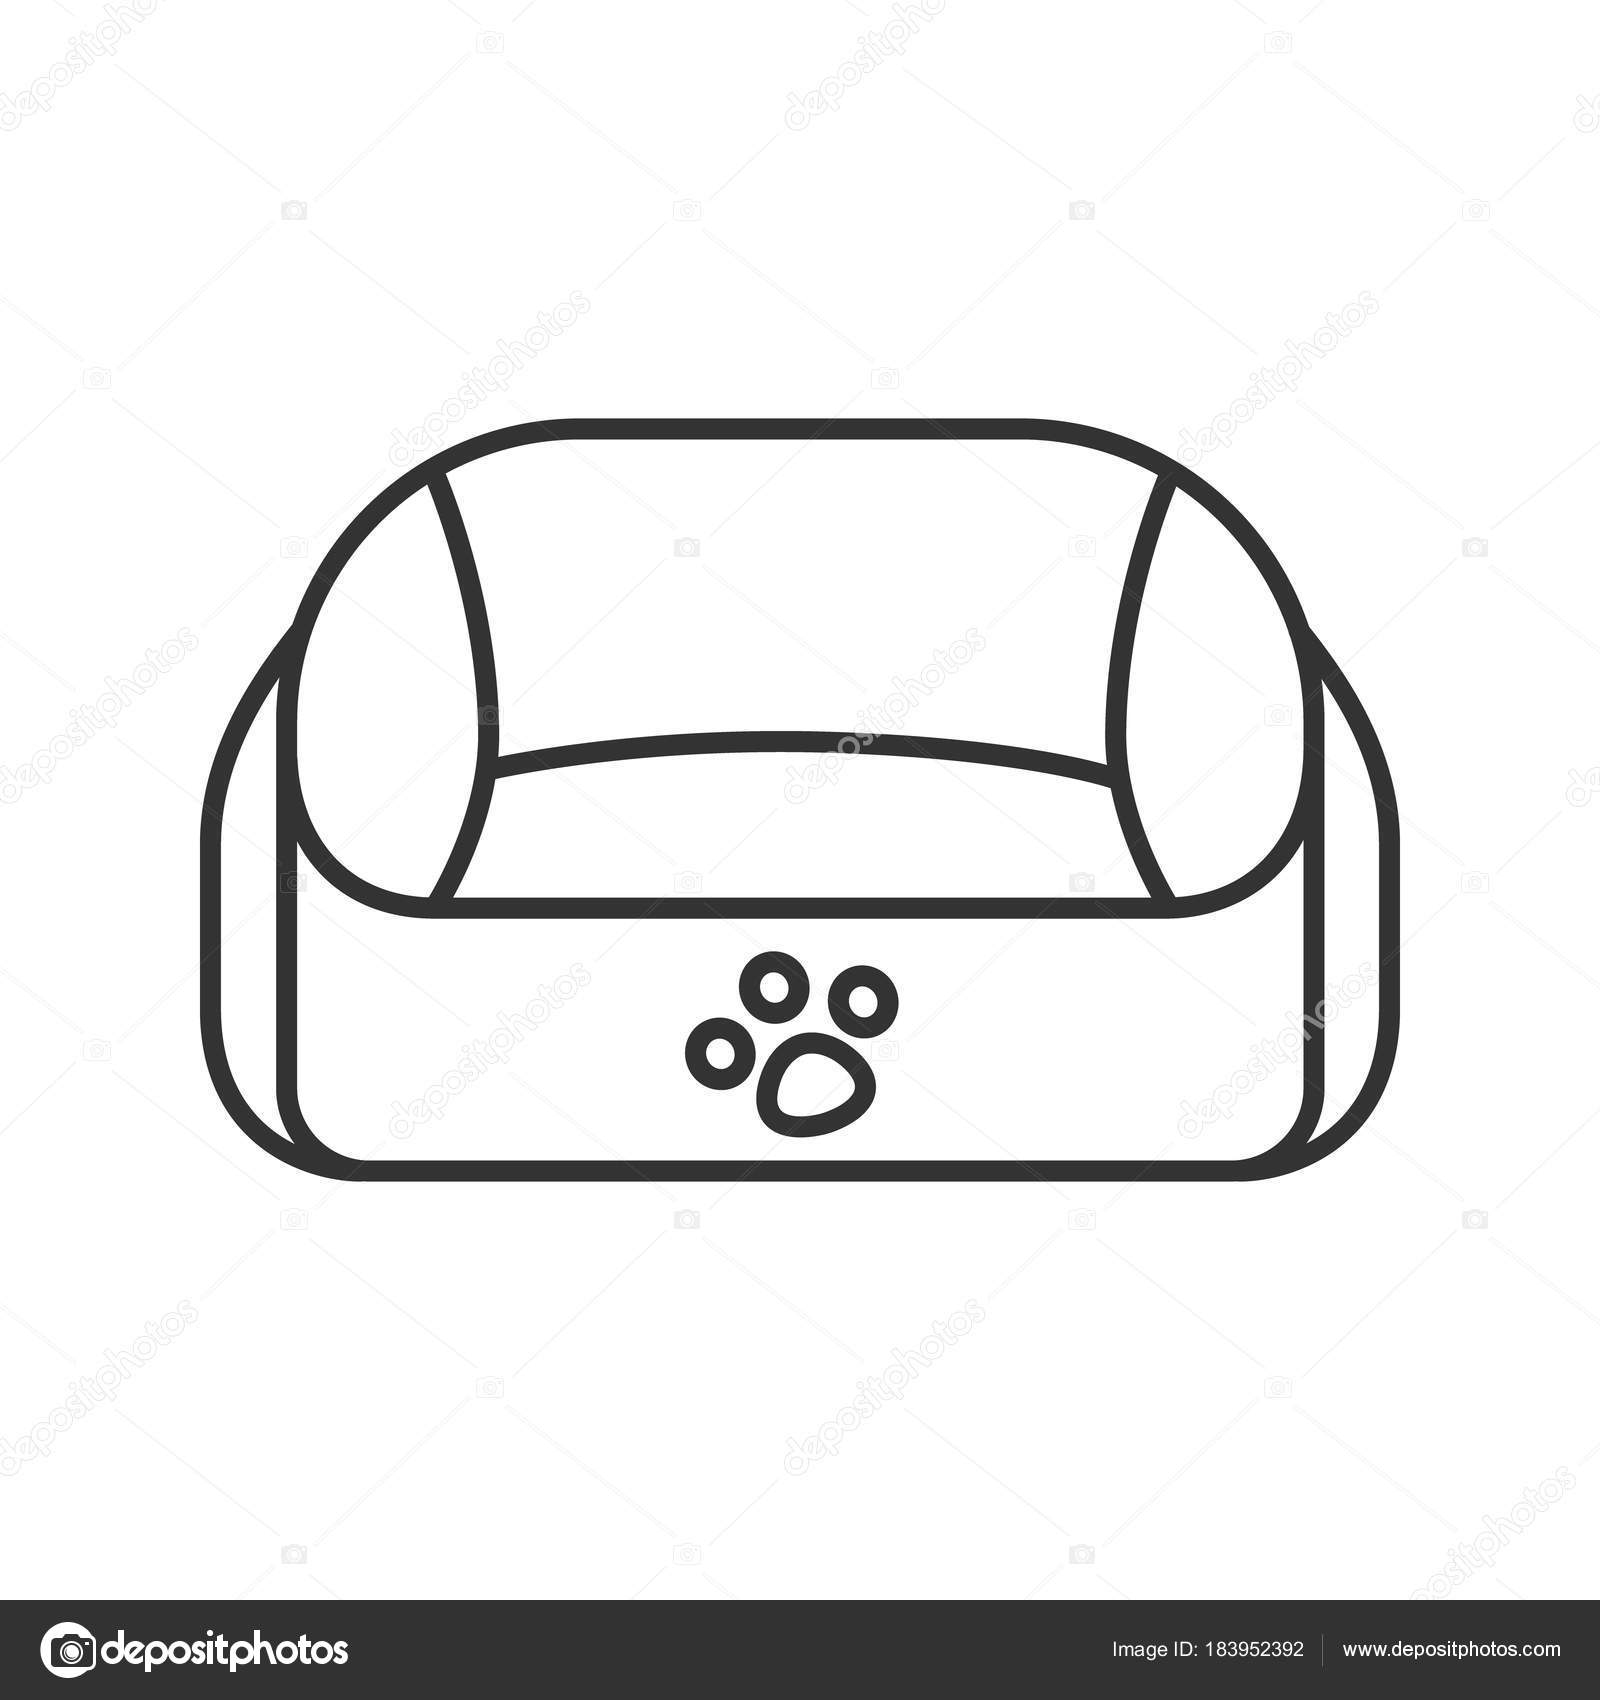 Drawing Lines Using Javascript : Pet bed linear icon thin line illustration contour symbol